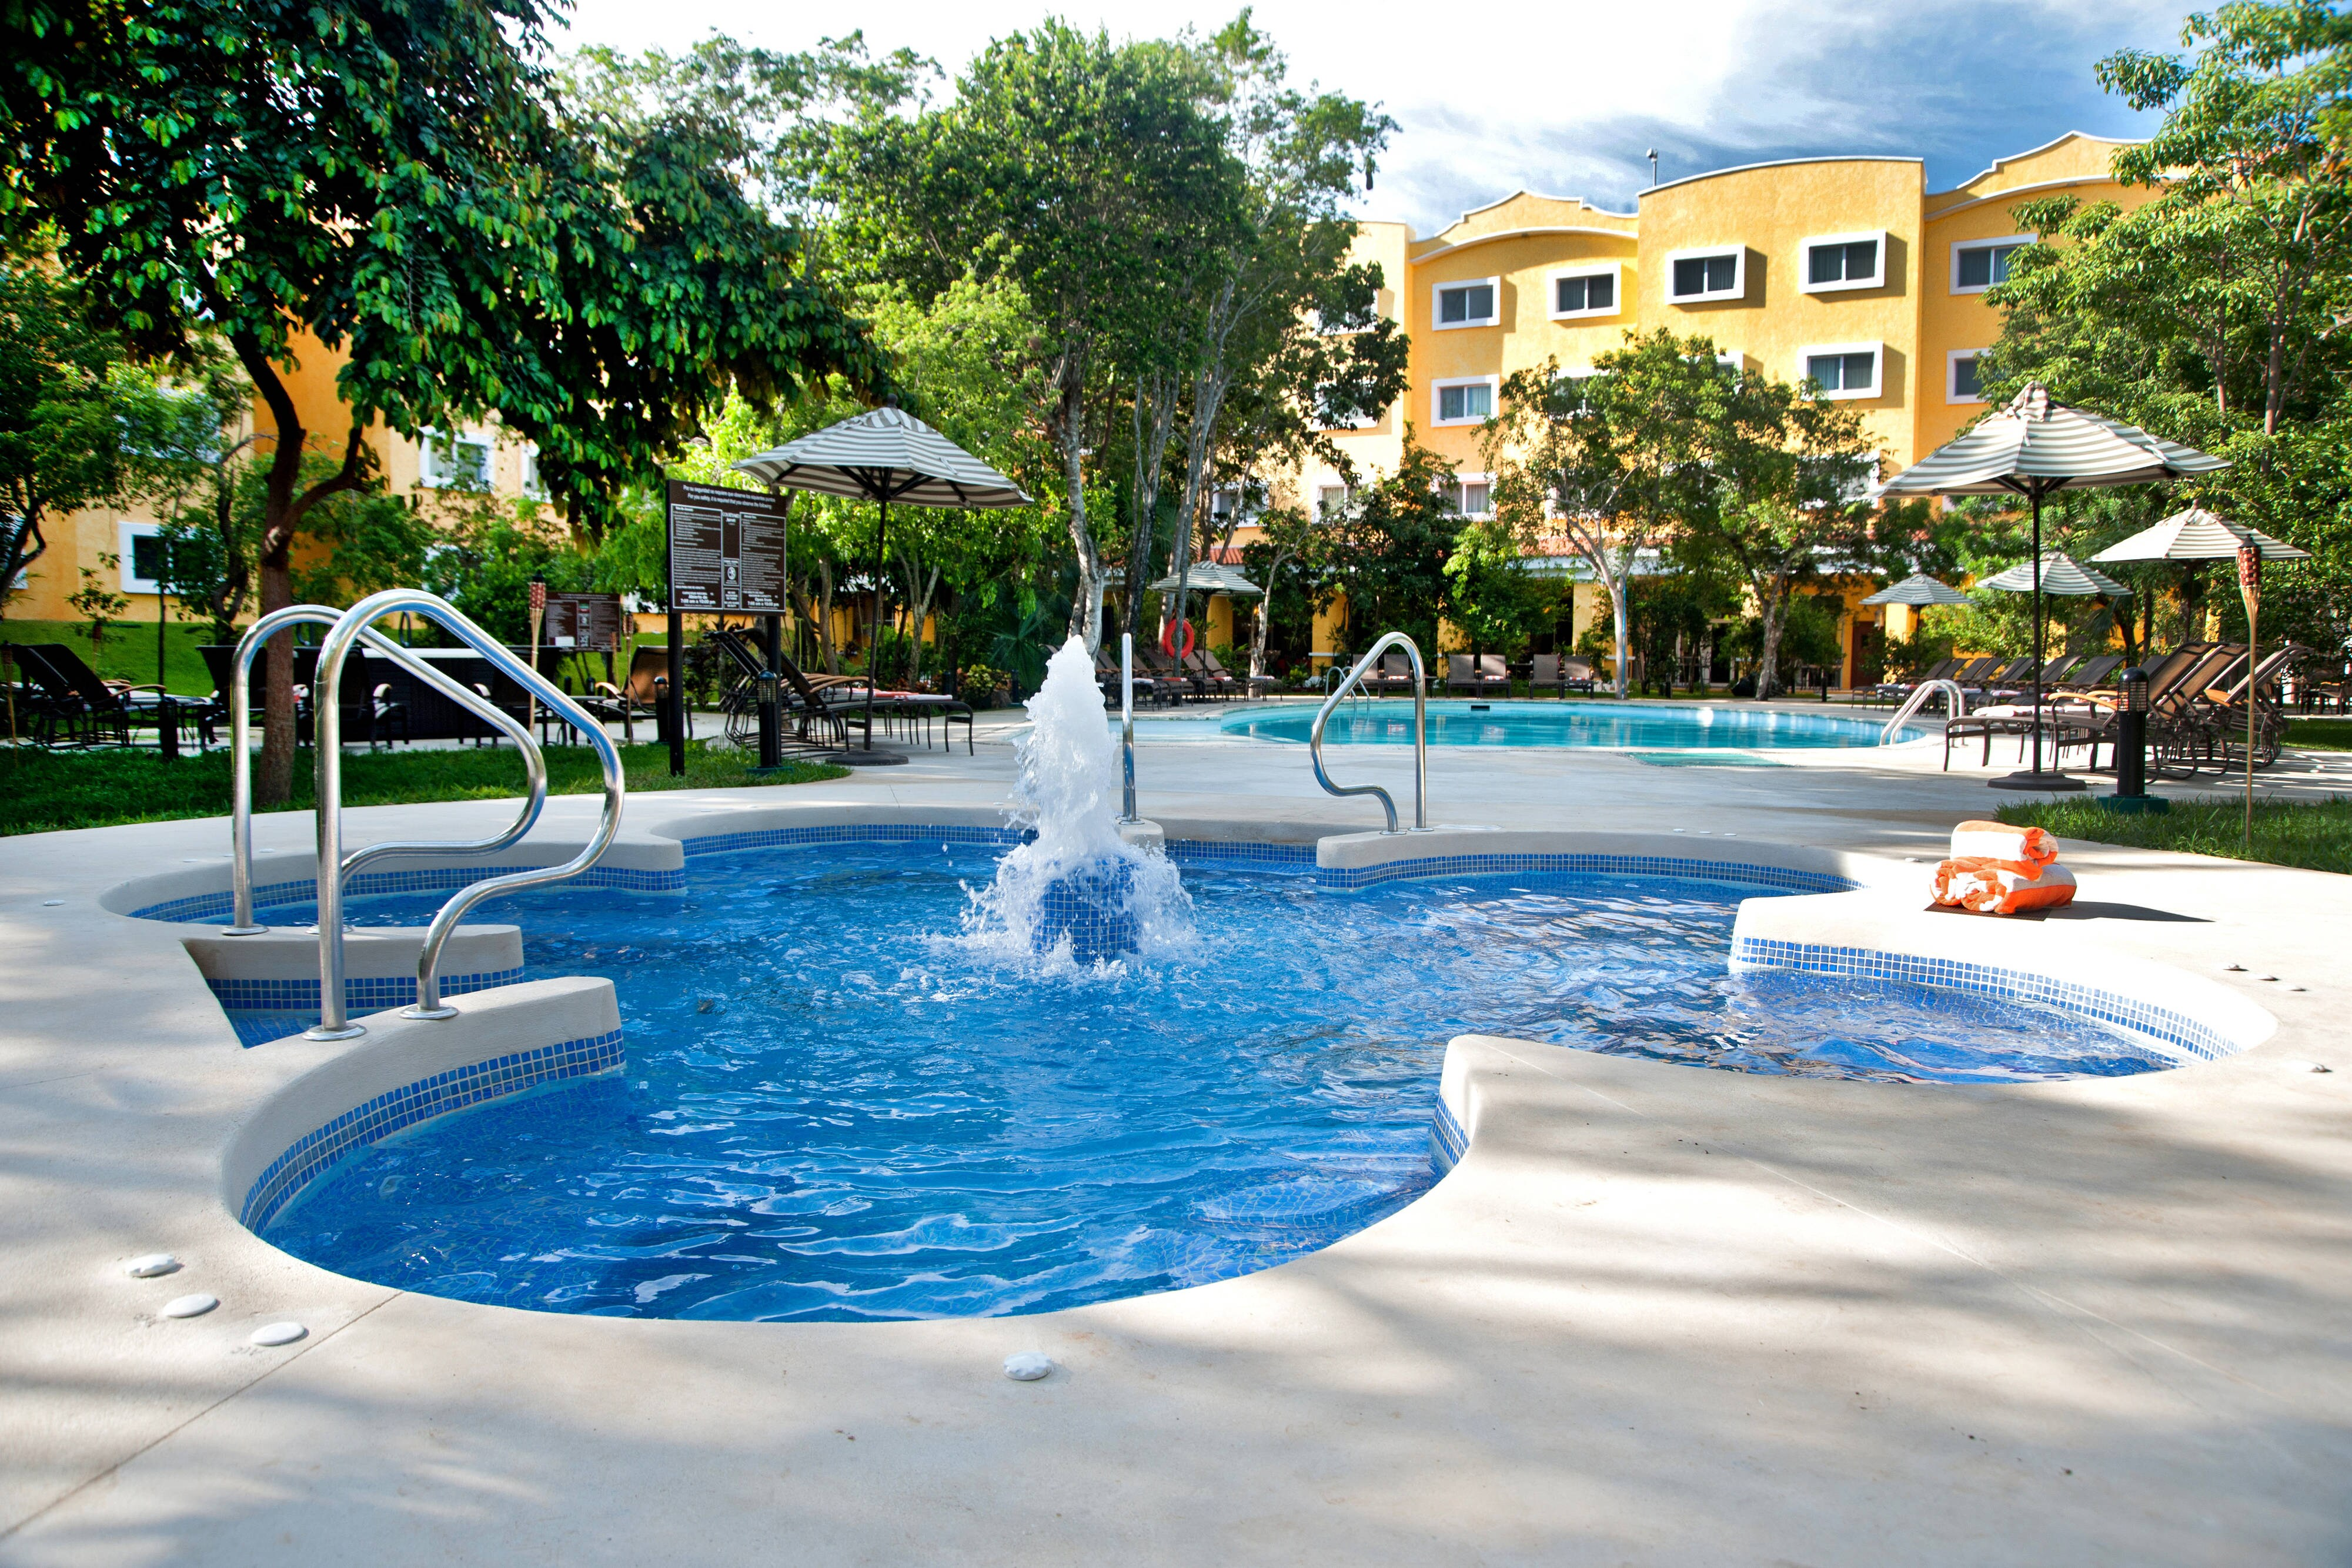 Hotel Cancun Mexico Outdoor Whirpool